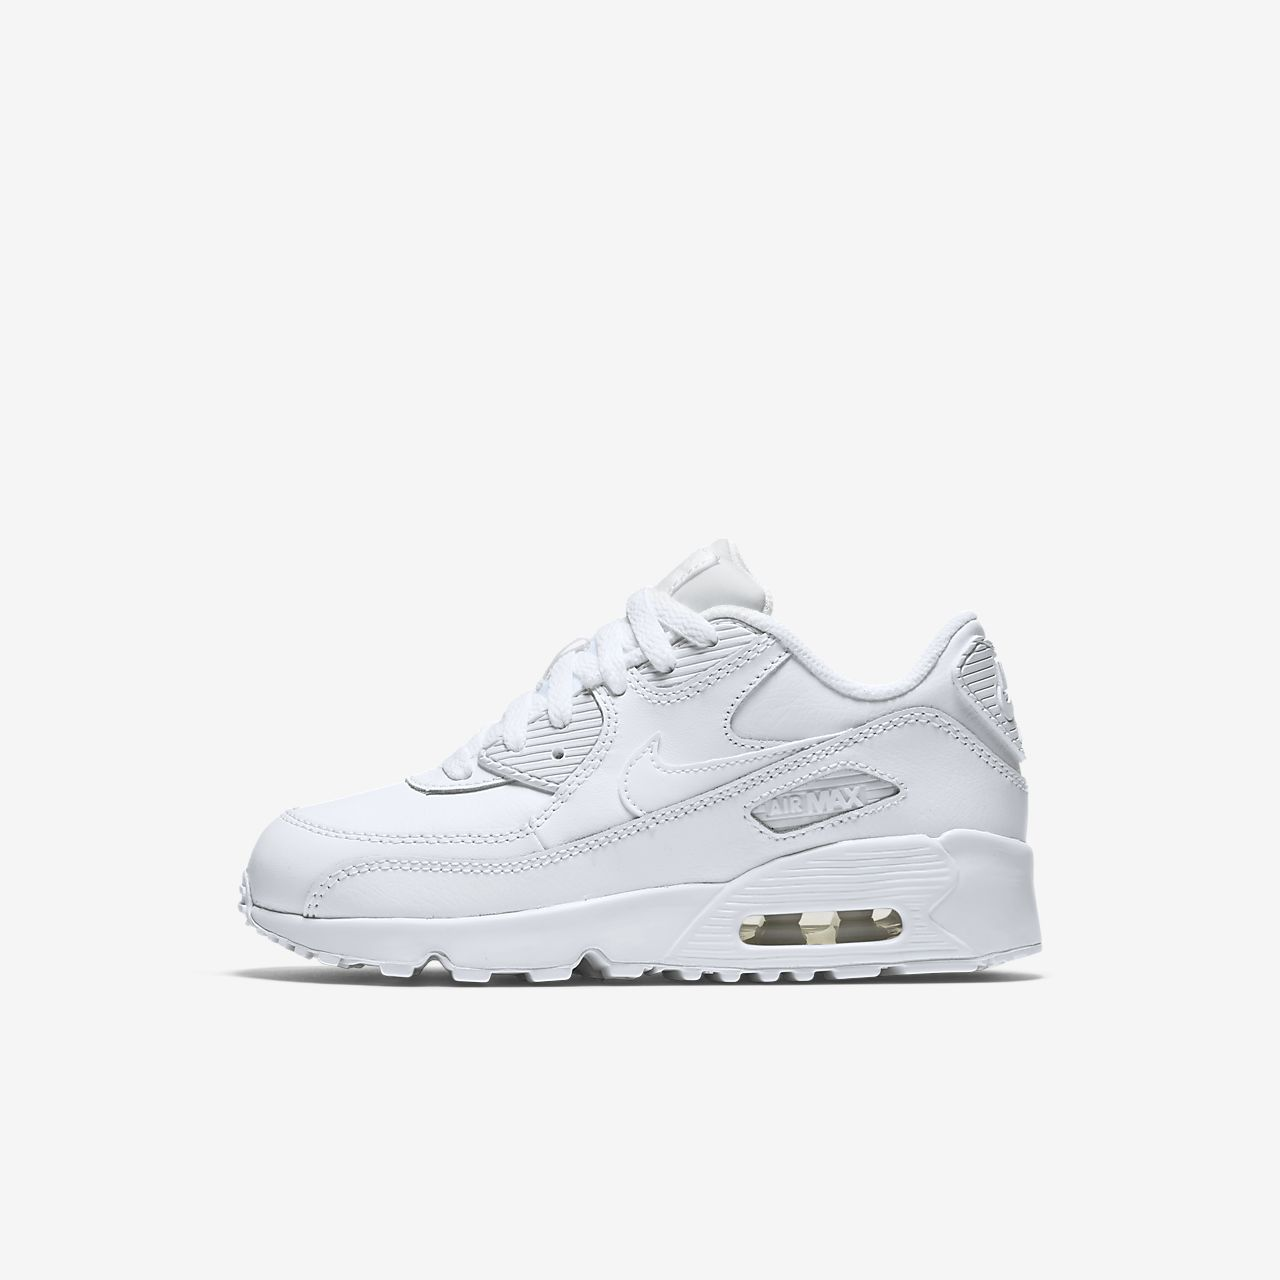 Nike Air Max 90 Leather – sko til små børn